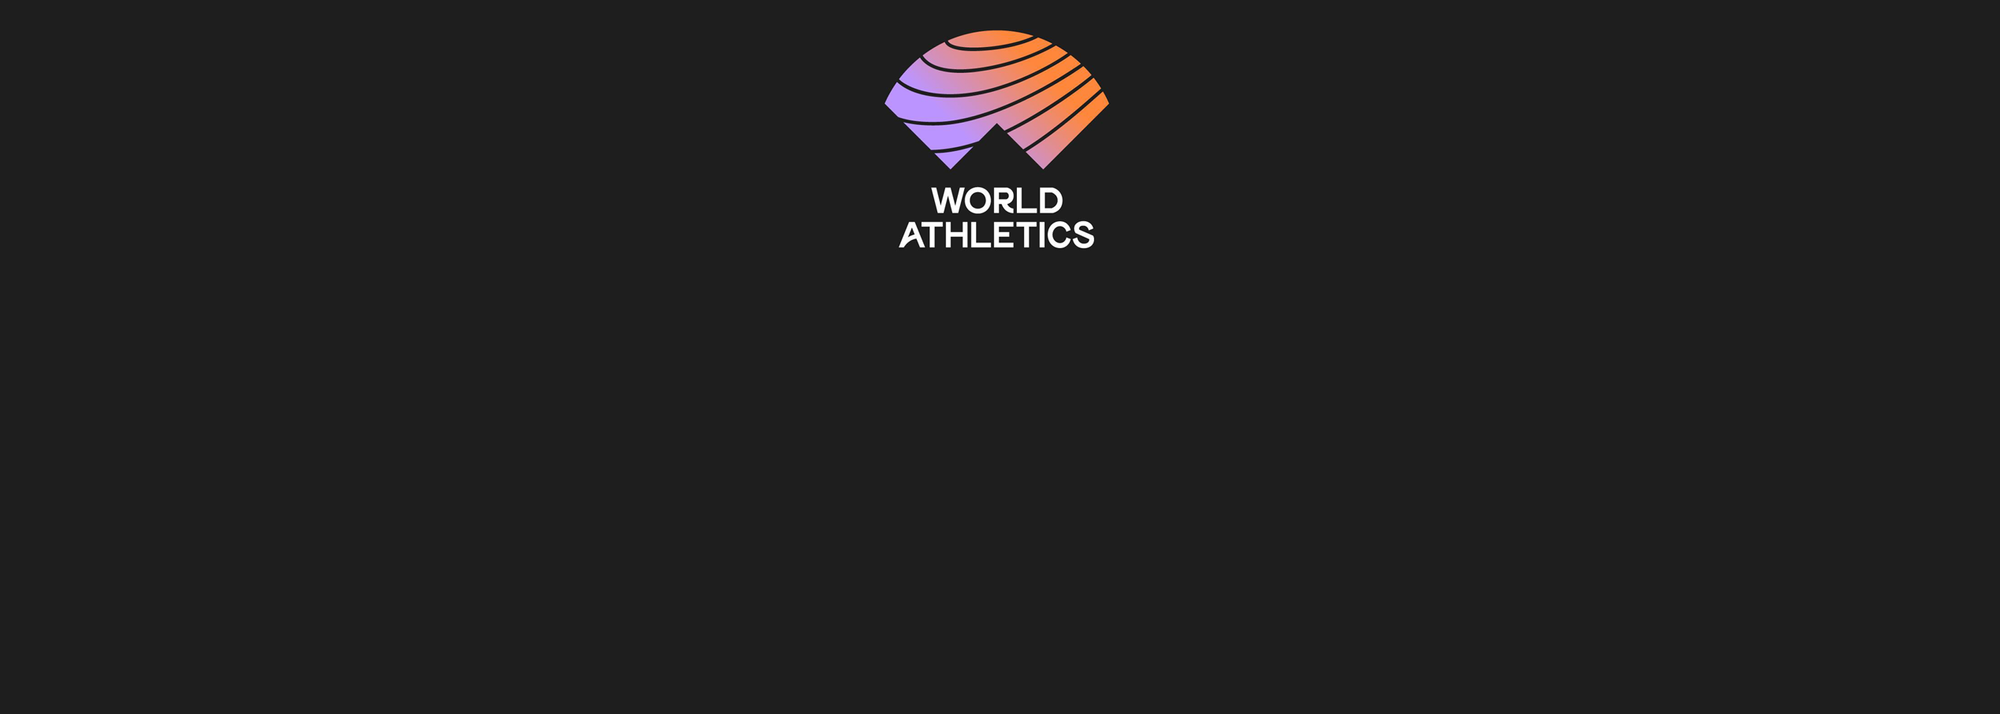 This is an exciting new and important position in the World Athletics Broadcast team.